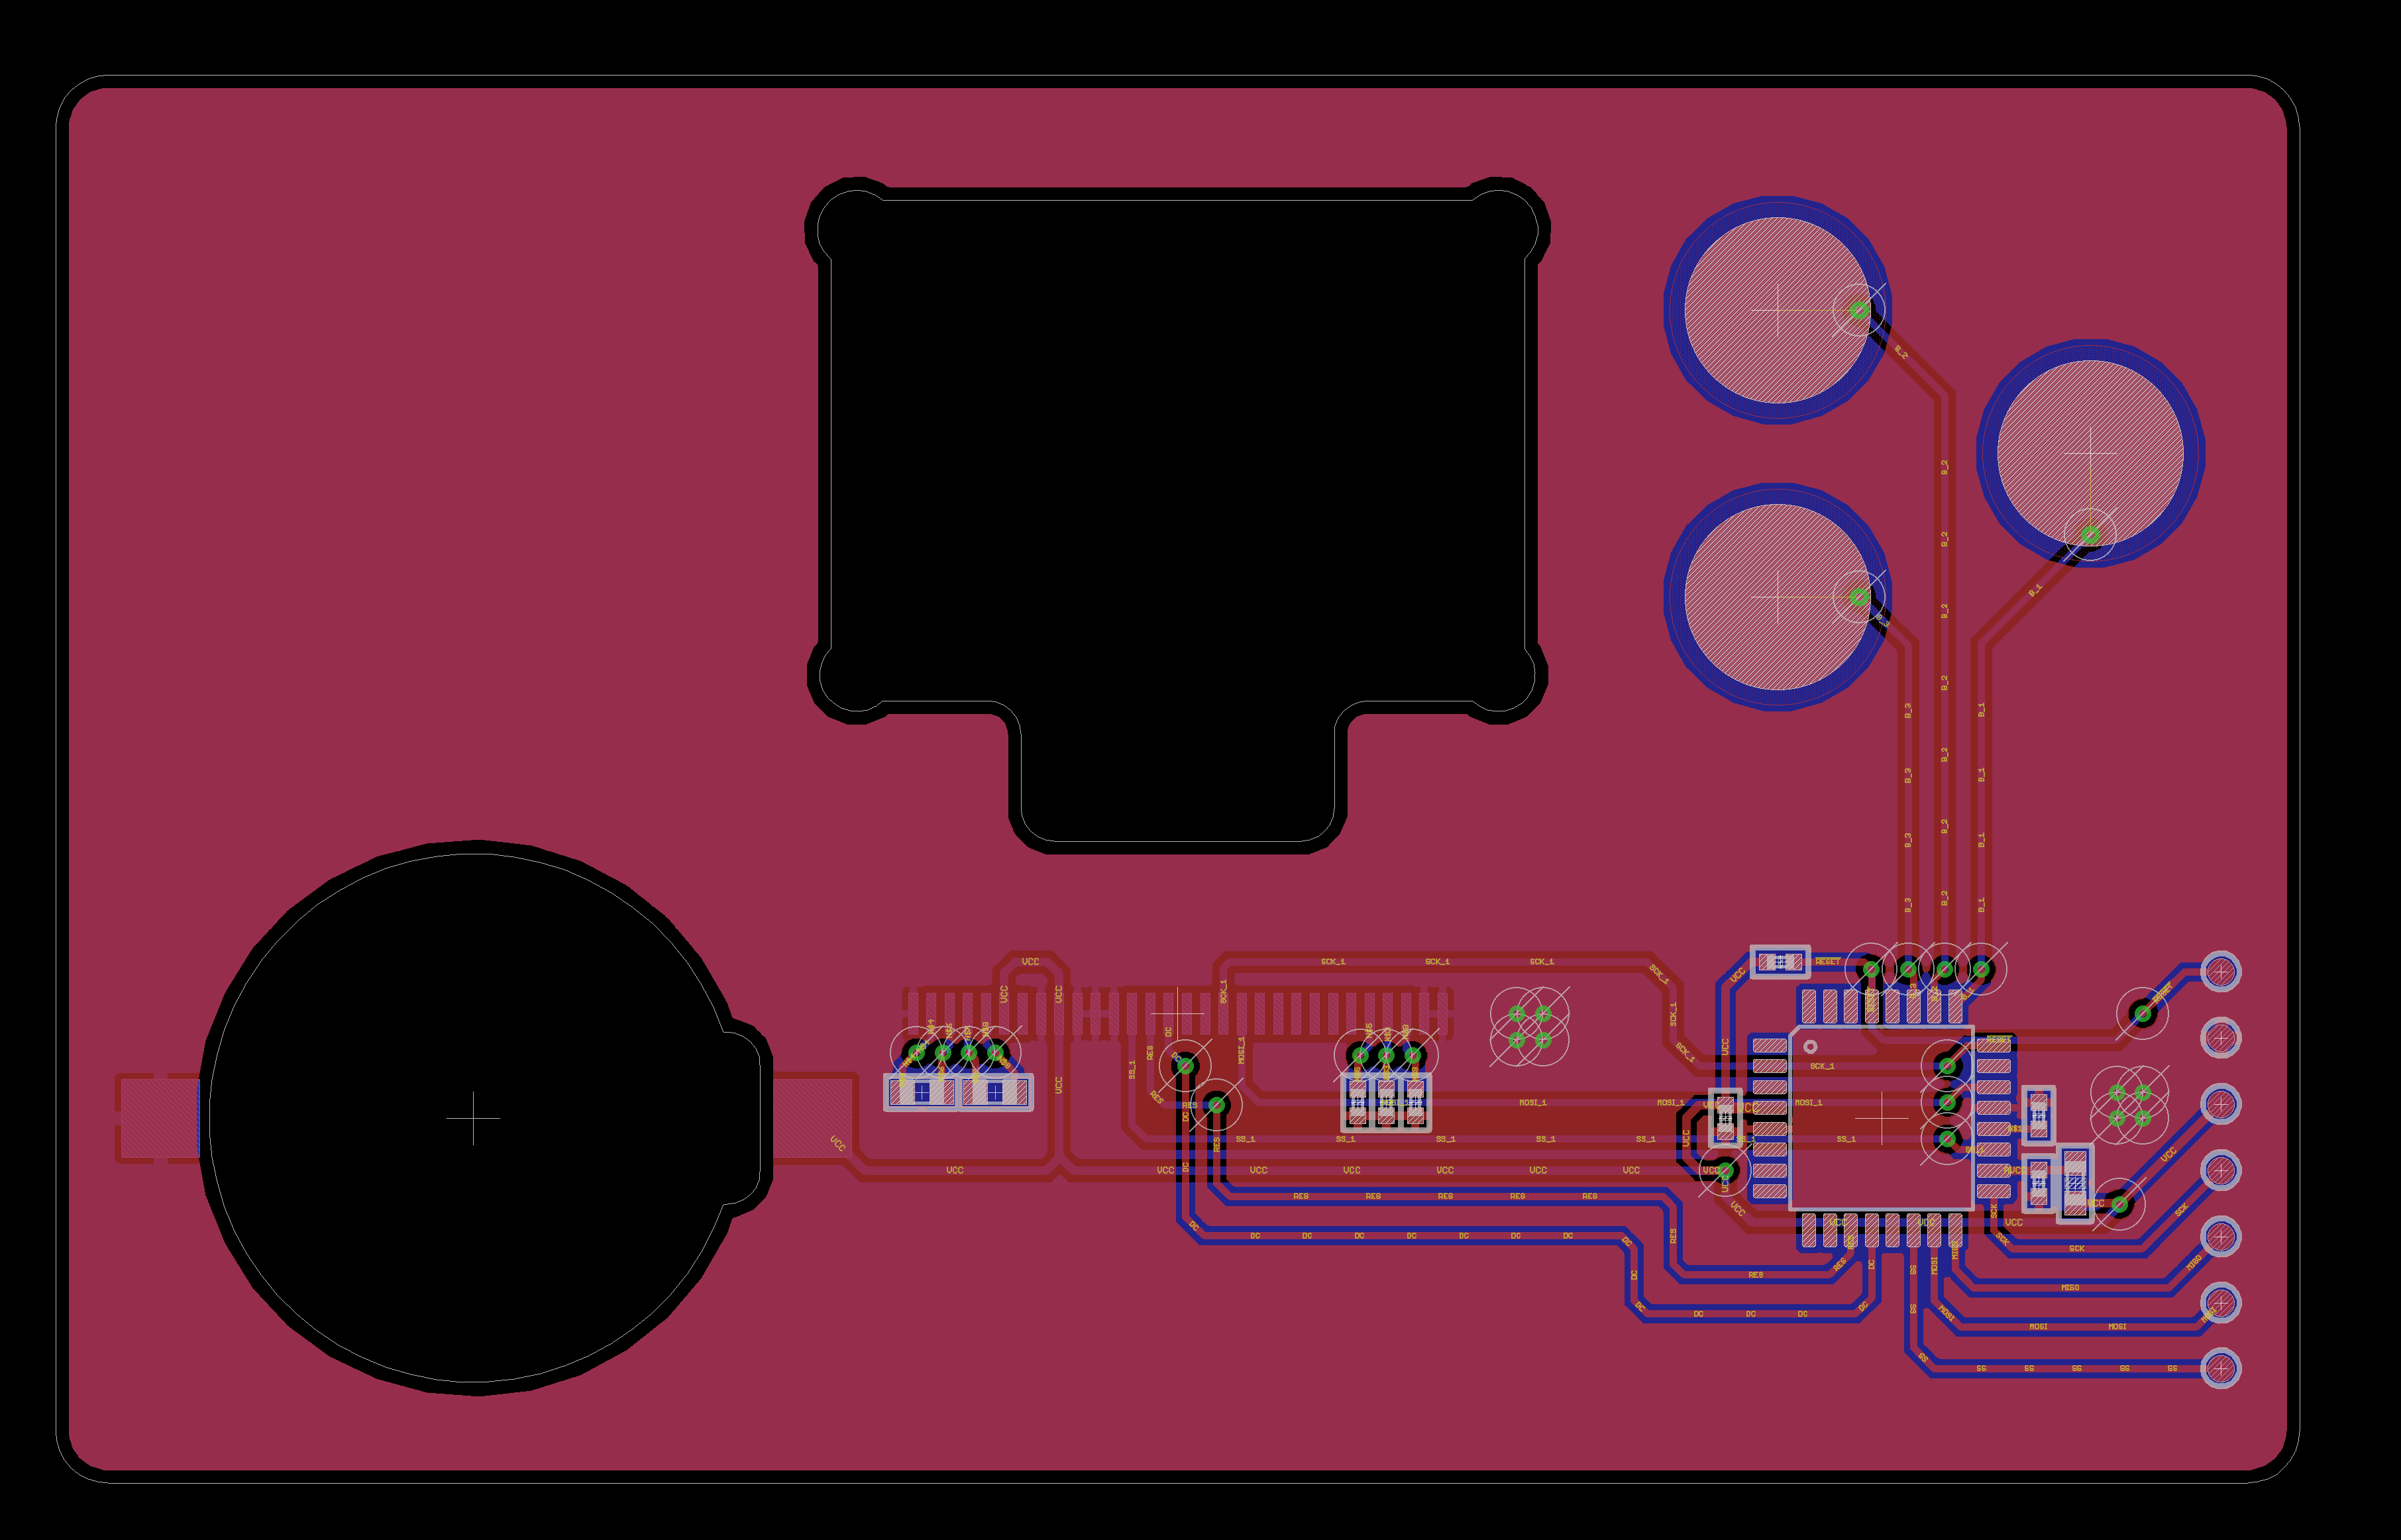 PLEASE HELP! A big Problem trying to make my pcb board to work